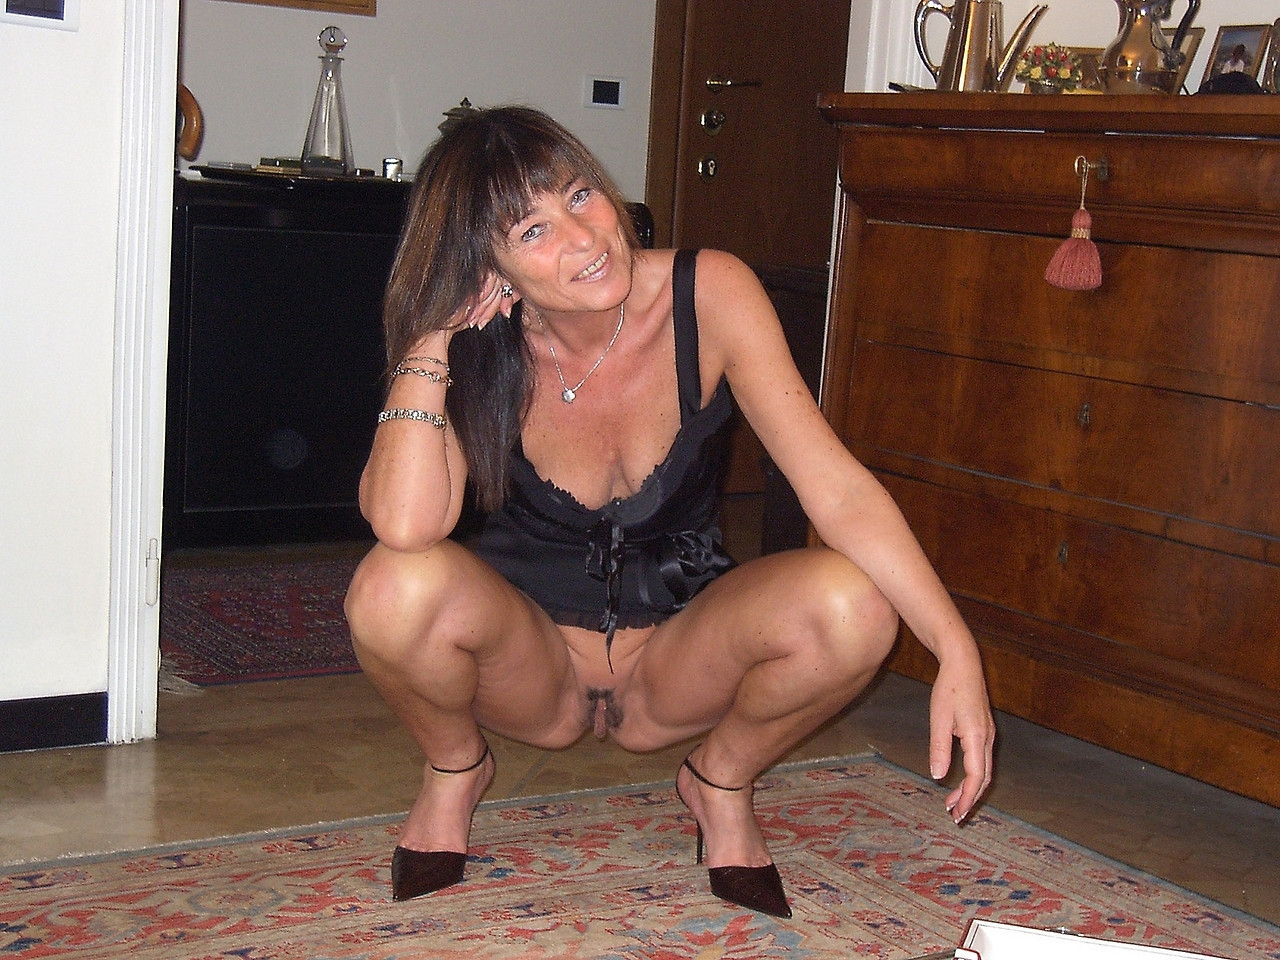 1910 French Porn - French Mature Women Xxx Earthy Exhib French Amateur Xxx French Amateur  Exhib France Mature Milf Photo